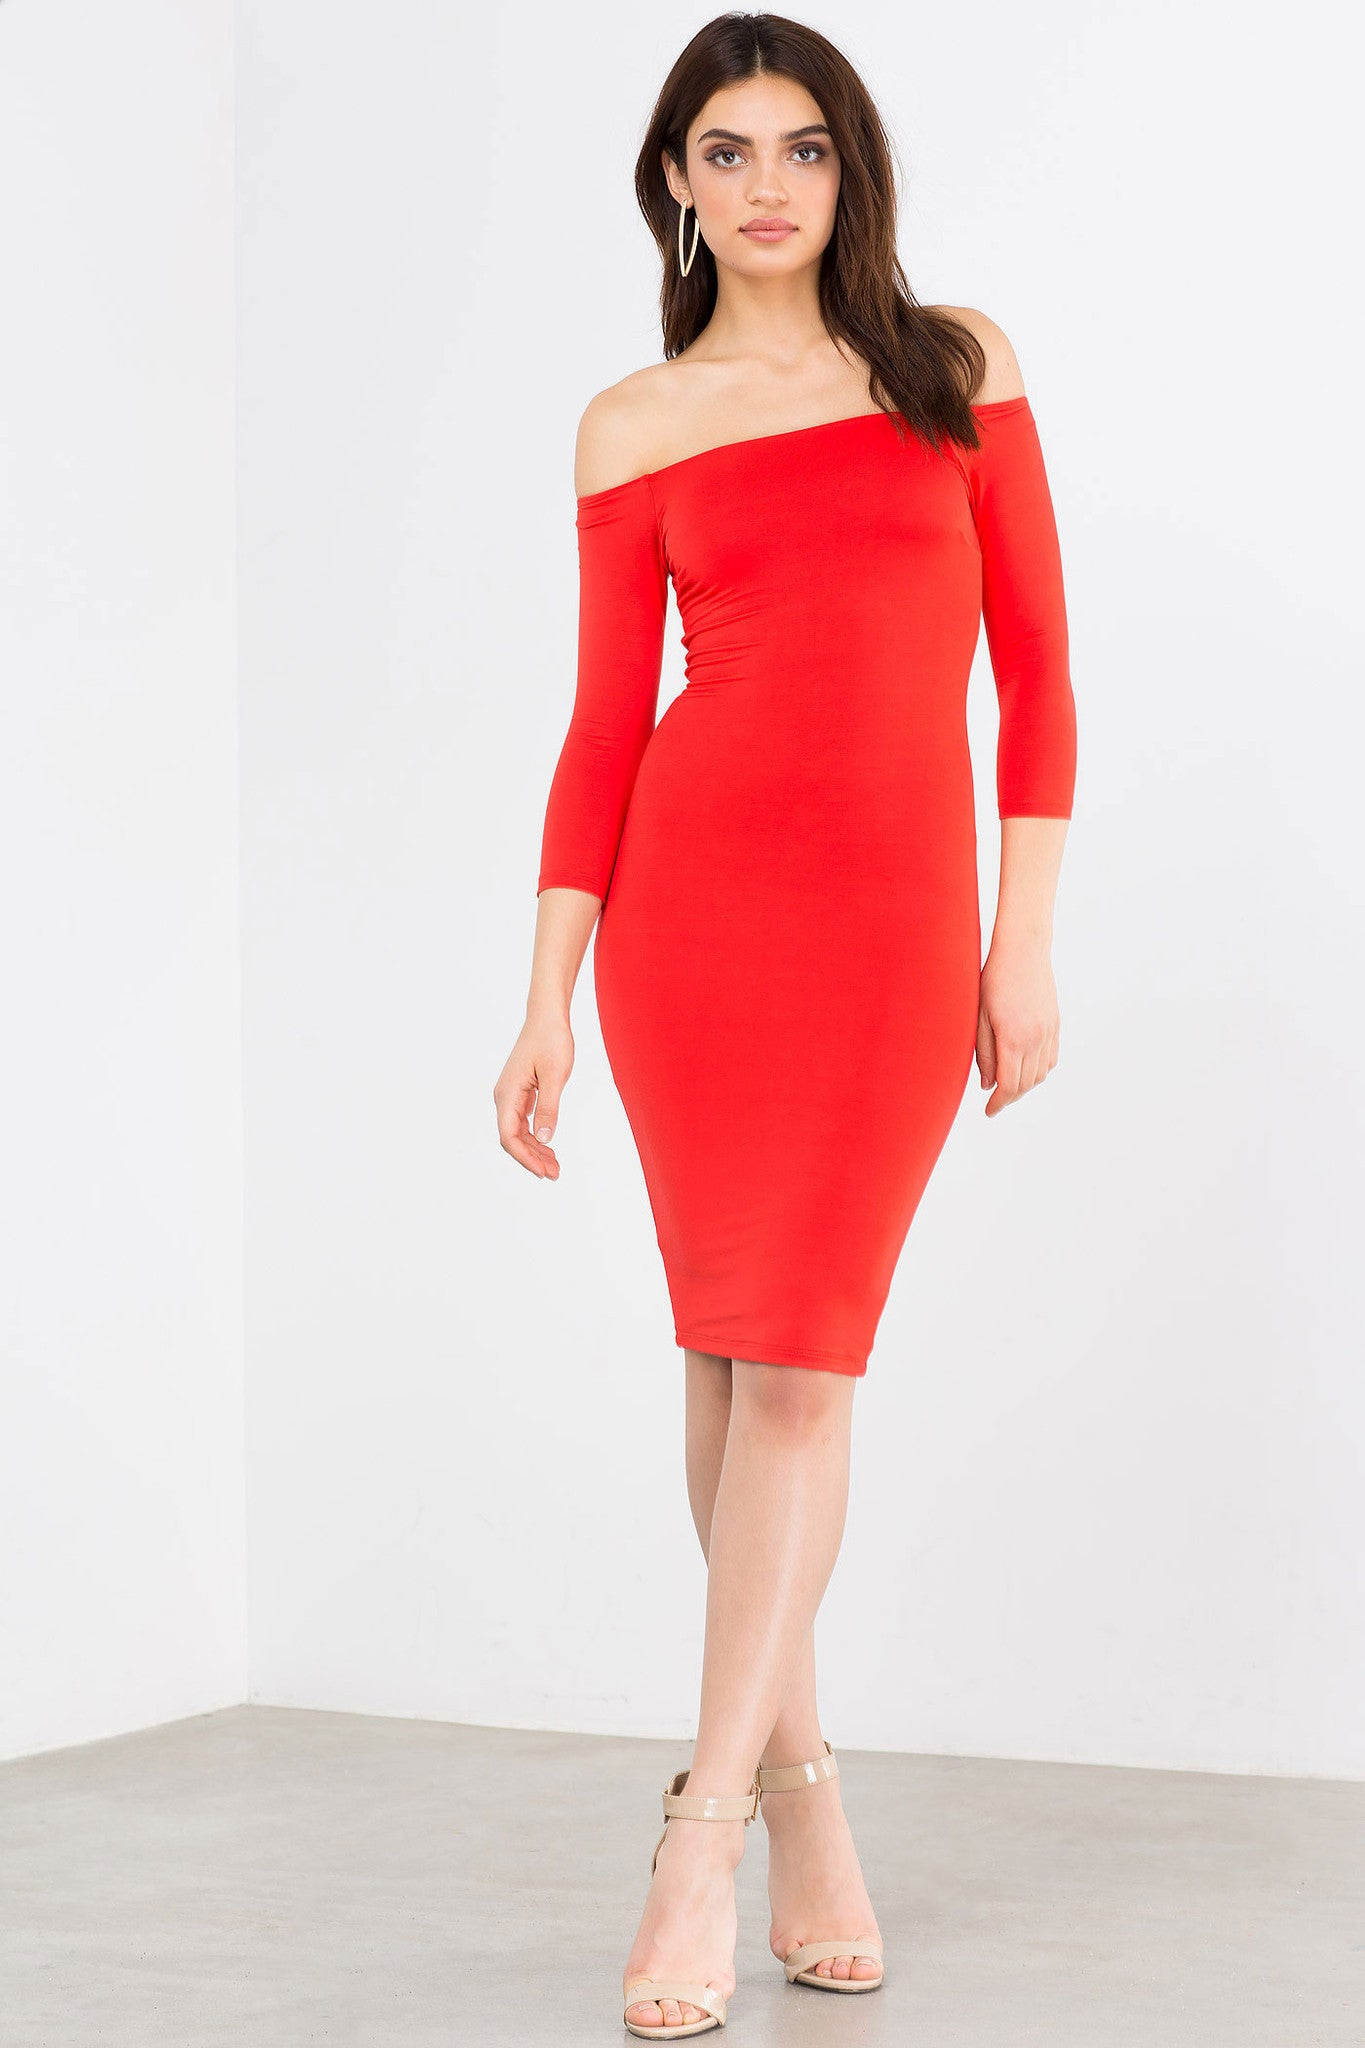 Red off the shoulder 3/4 sleeve party bodycon midi dress. Front view.